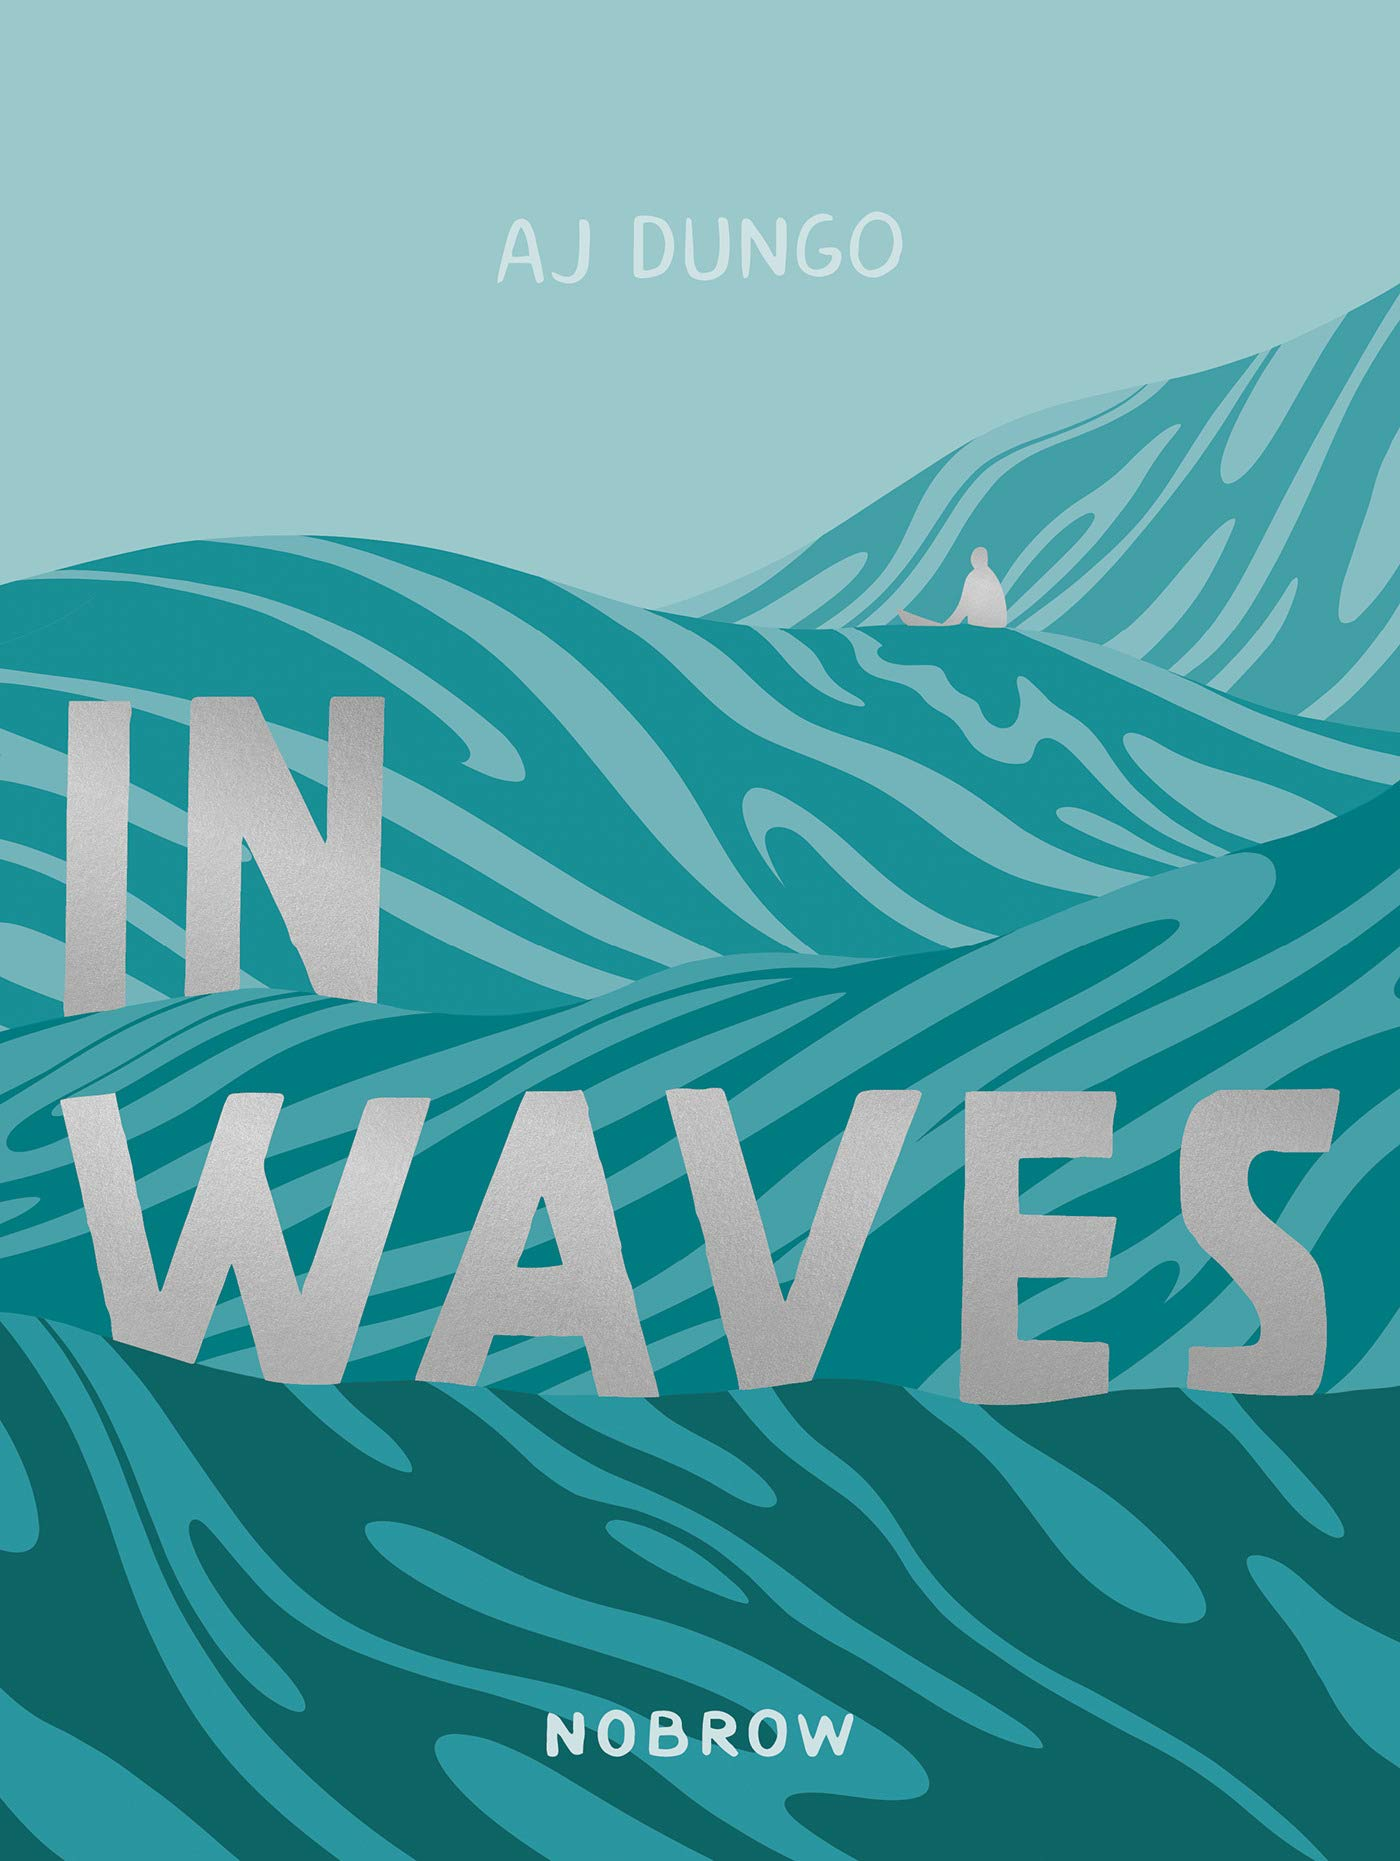 'In Waves' by AJ Dungo